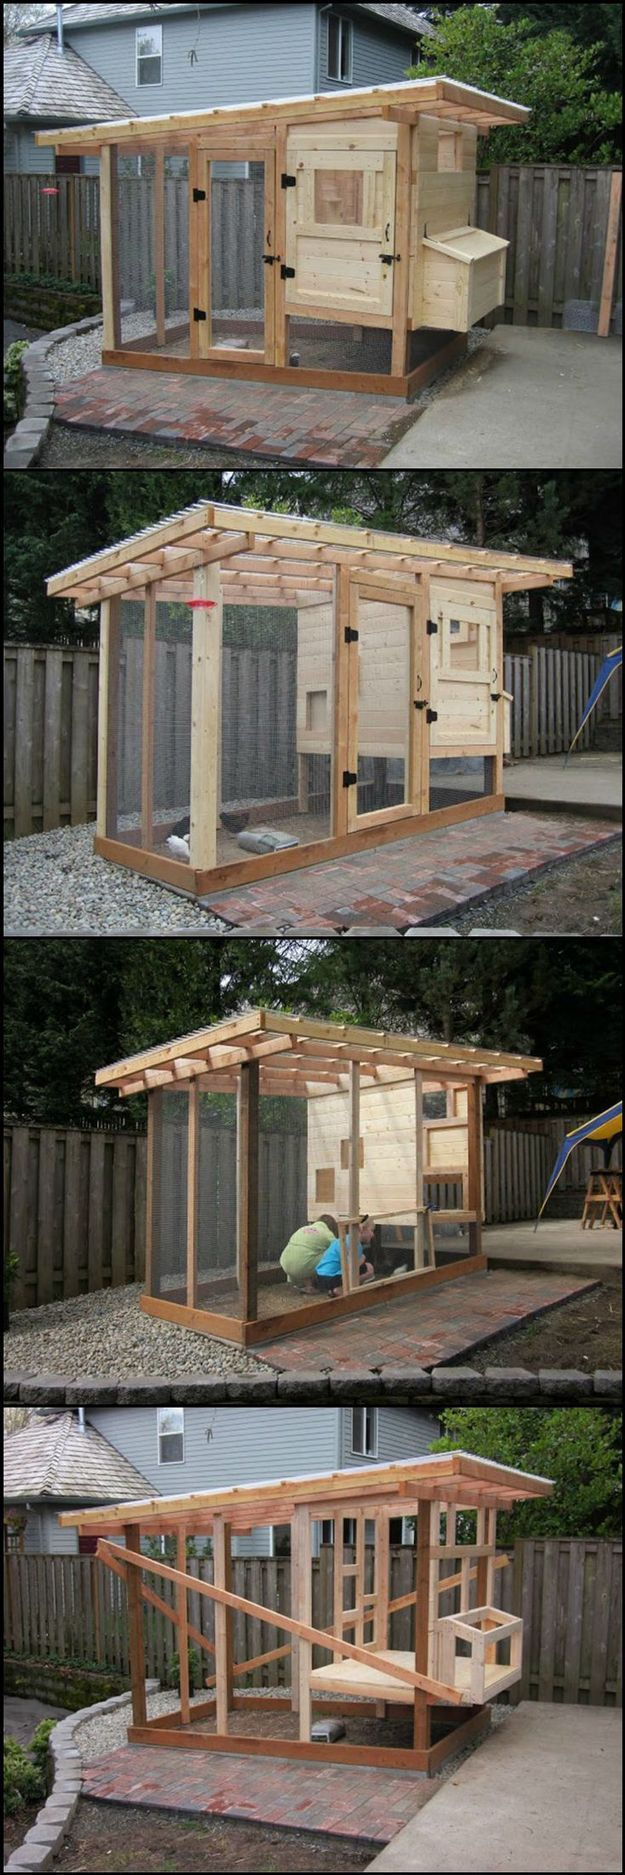 15 more awesome chicken coop designs and ideas cool diy homesteading projects by pioneer settler at - Chicken Coop Design Ideas